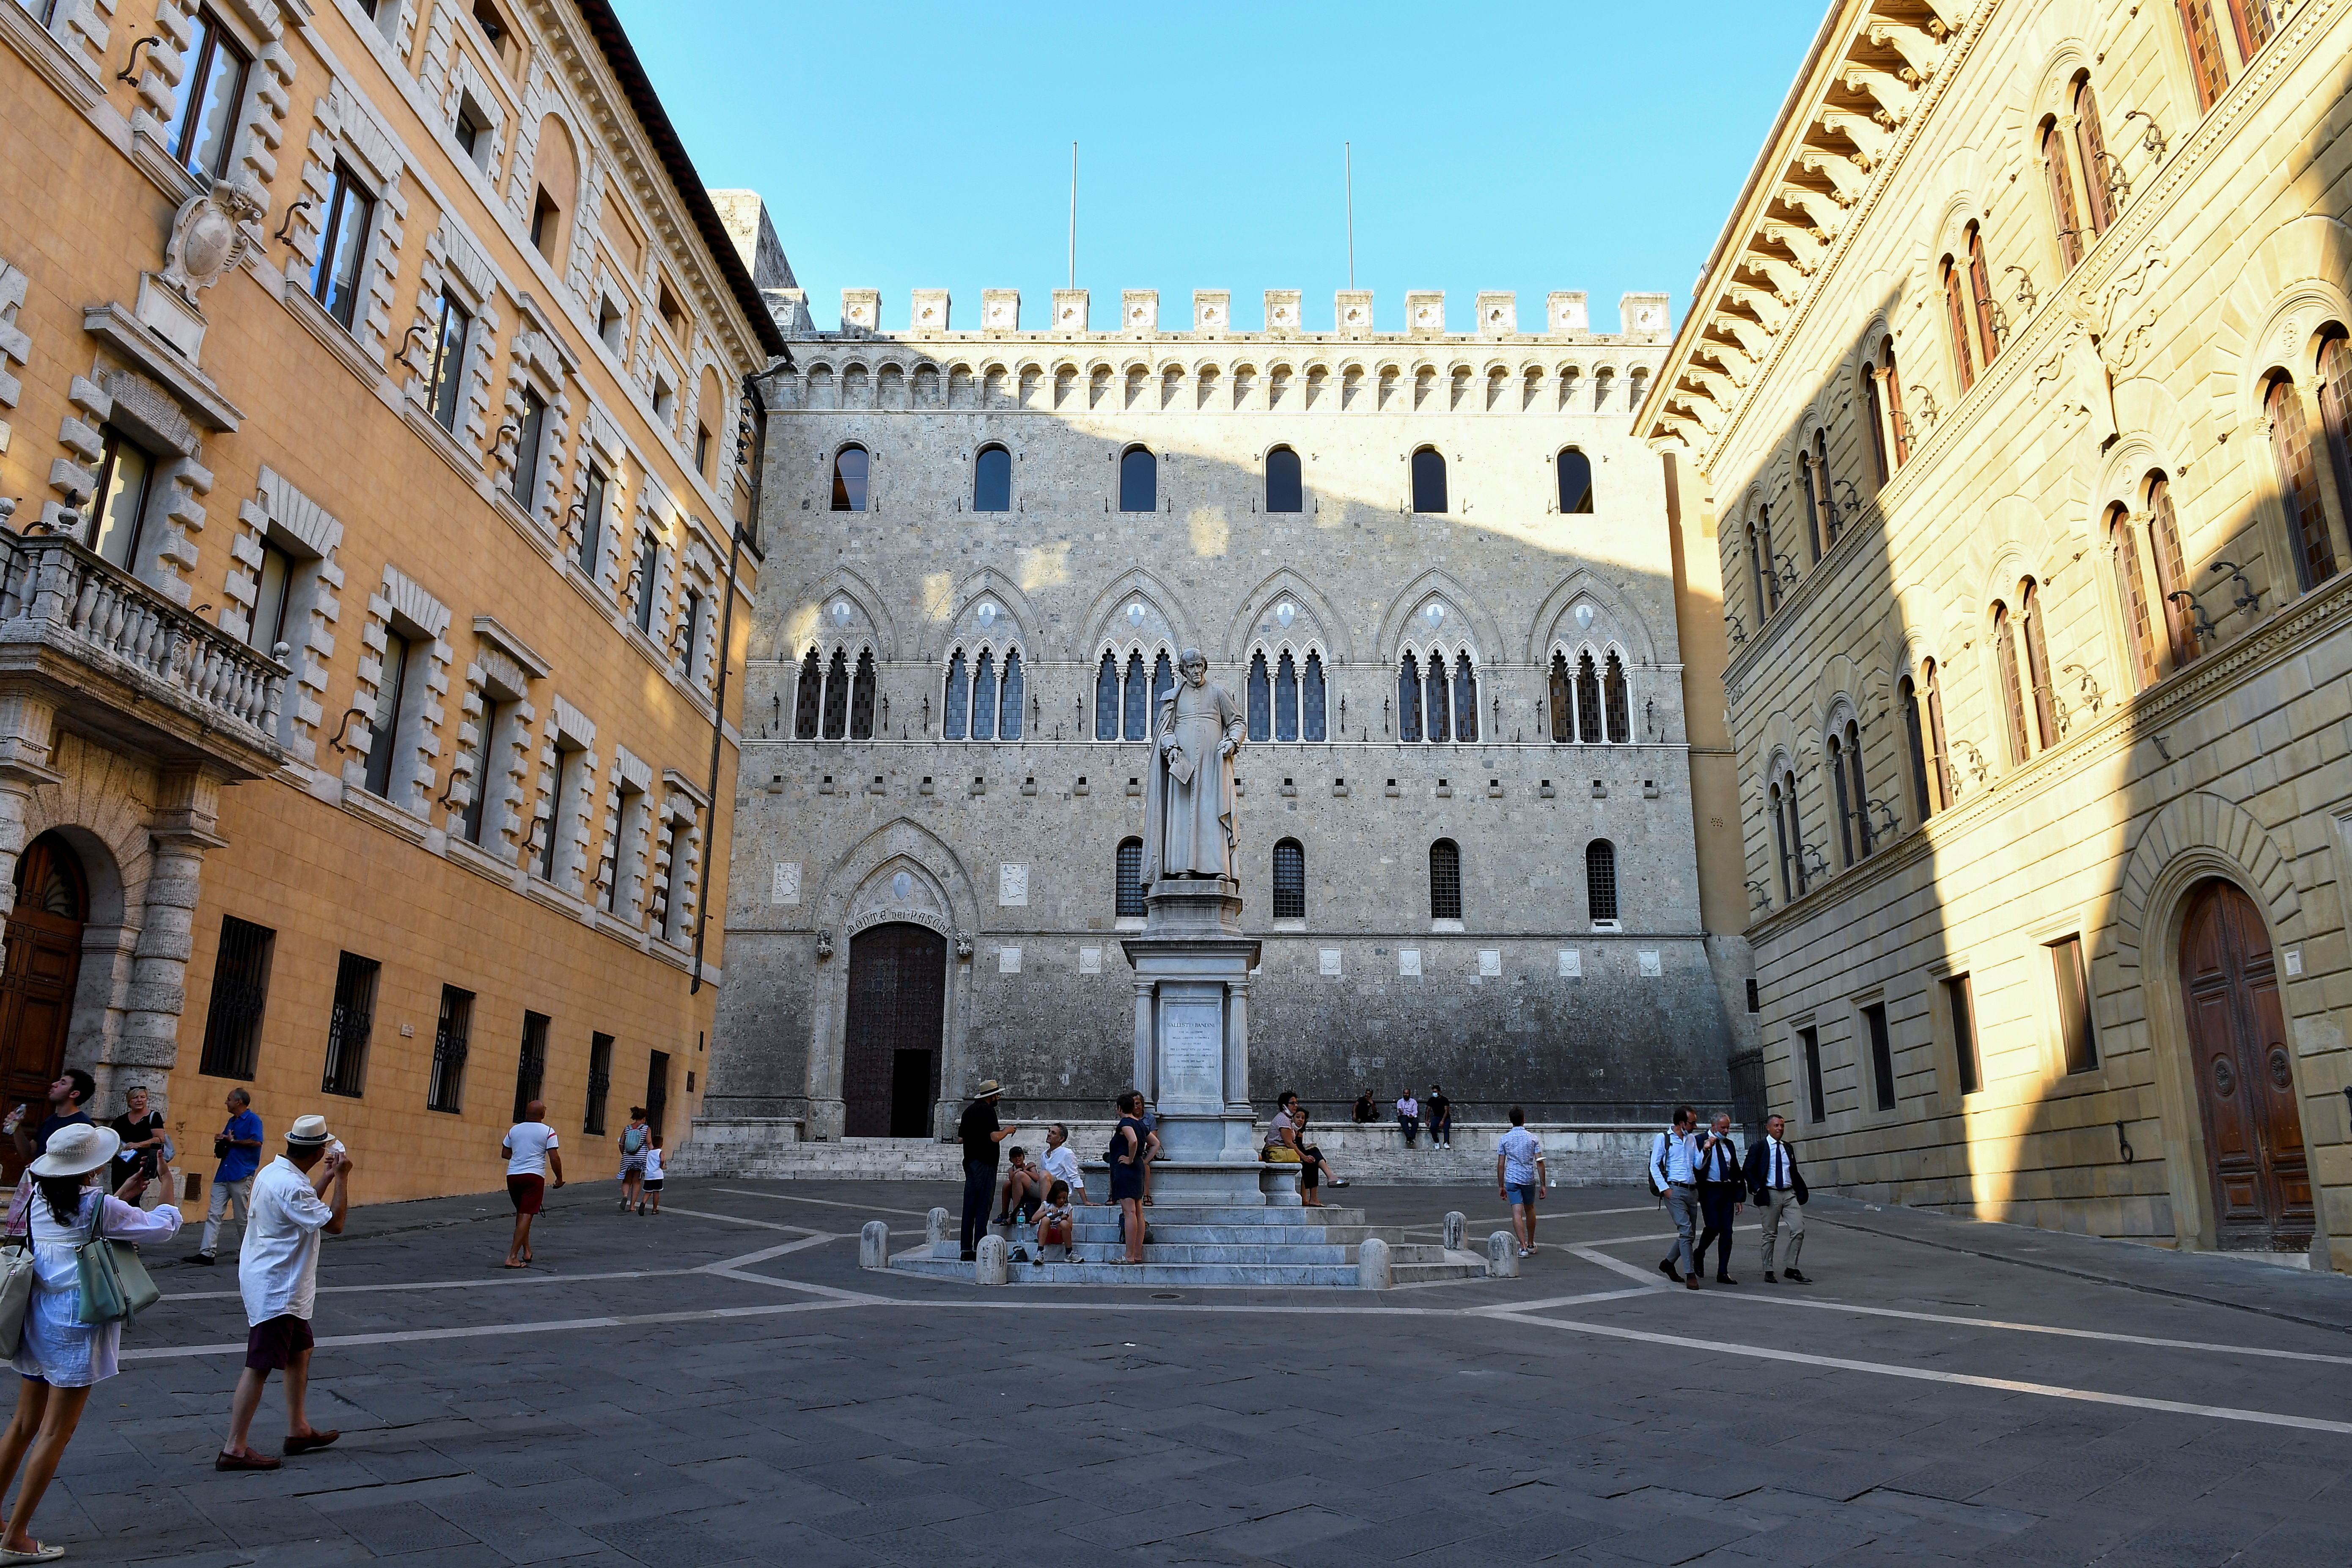 General view of Piazza Salimbeni, home to Monte dei Paschi di Siena (MPS), the oldest bank in the world, which is facing massive layoffs as part of a planned corporate merger, in Siena, Italy, August 11, 2021. REUTERS / Jennifer Lorenzini